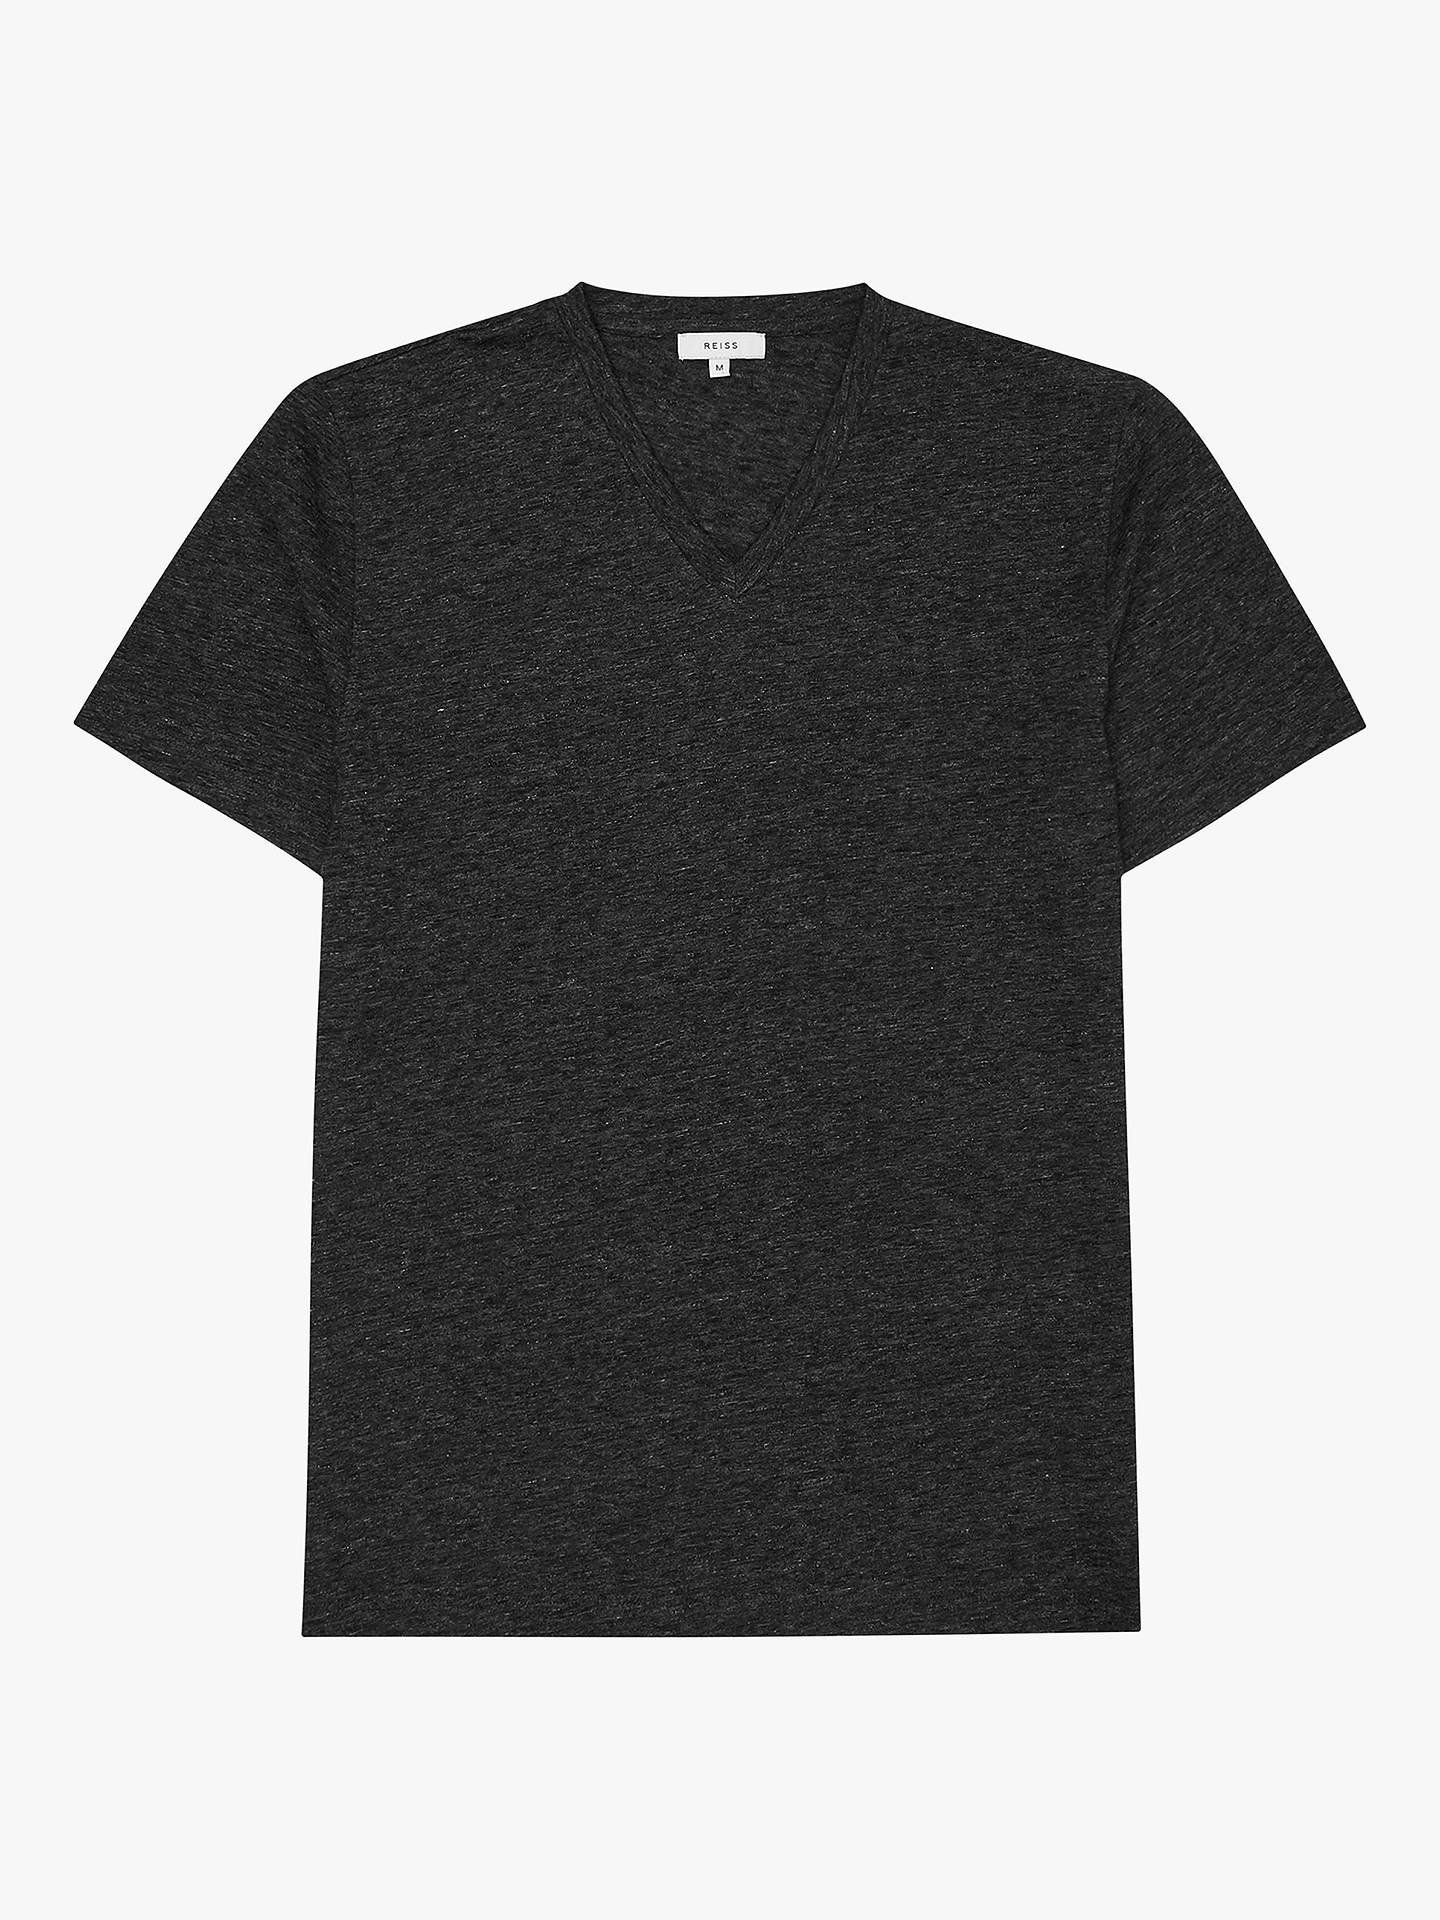 BuyReiss Gondola Melange V-Neck T-Shirt, Charcoal, S Online at johnlewis.com